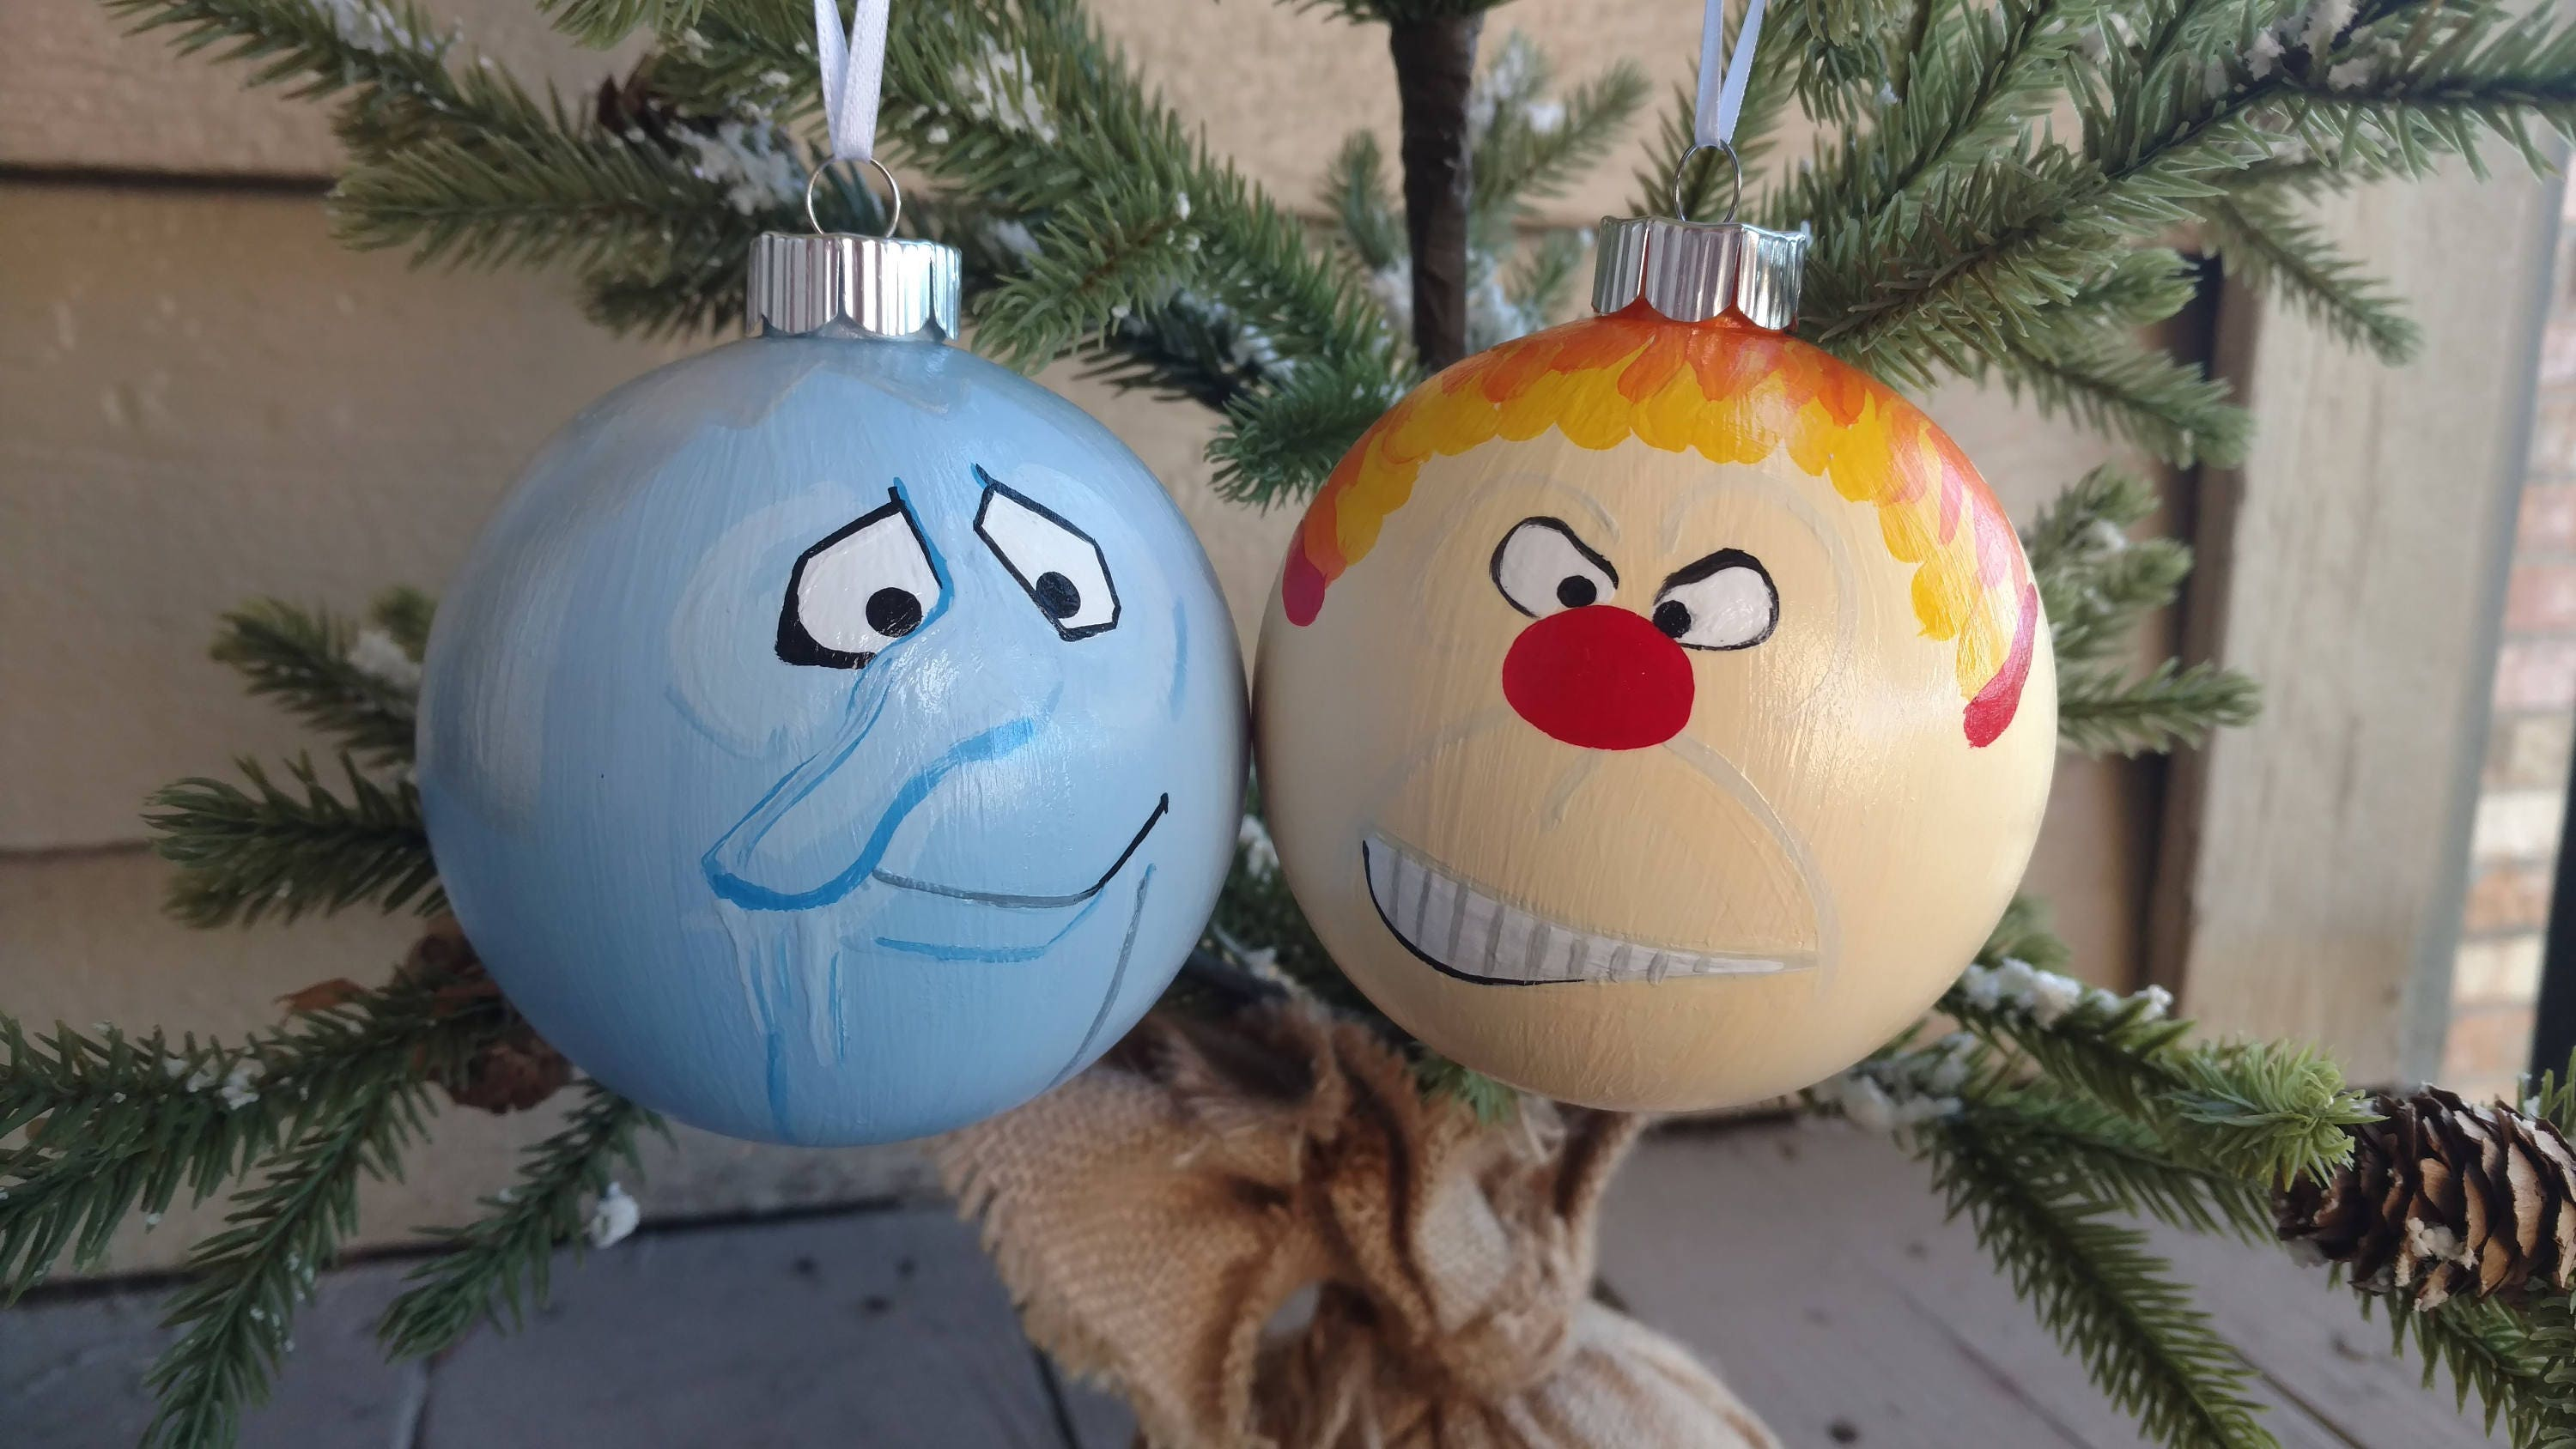 Snow Miser and Heat Miser OrnamentsThe Year without a Santa   Etsy